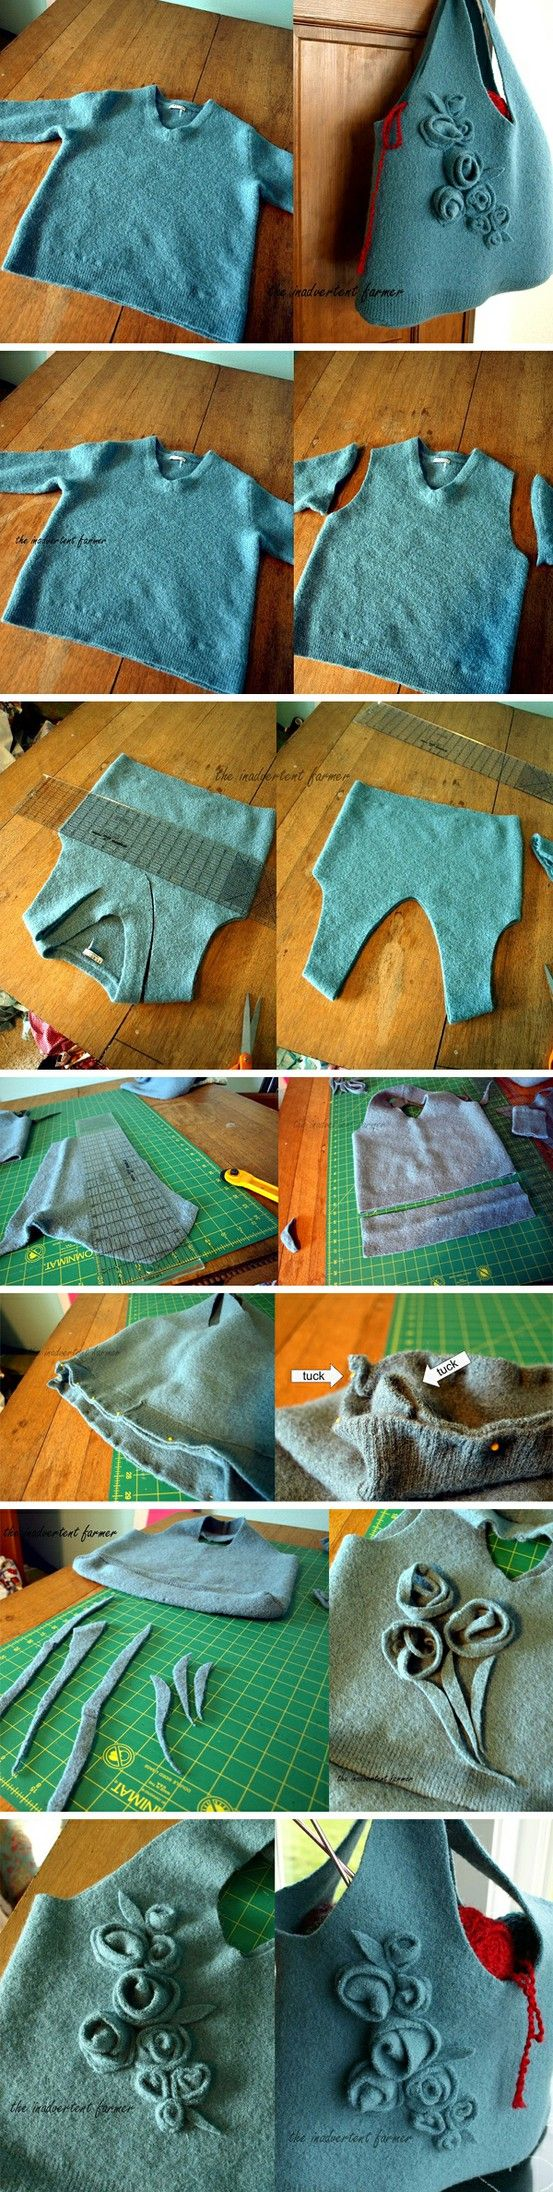 Felted woo bag from old sweater  …  So cute!!